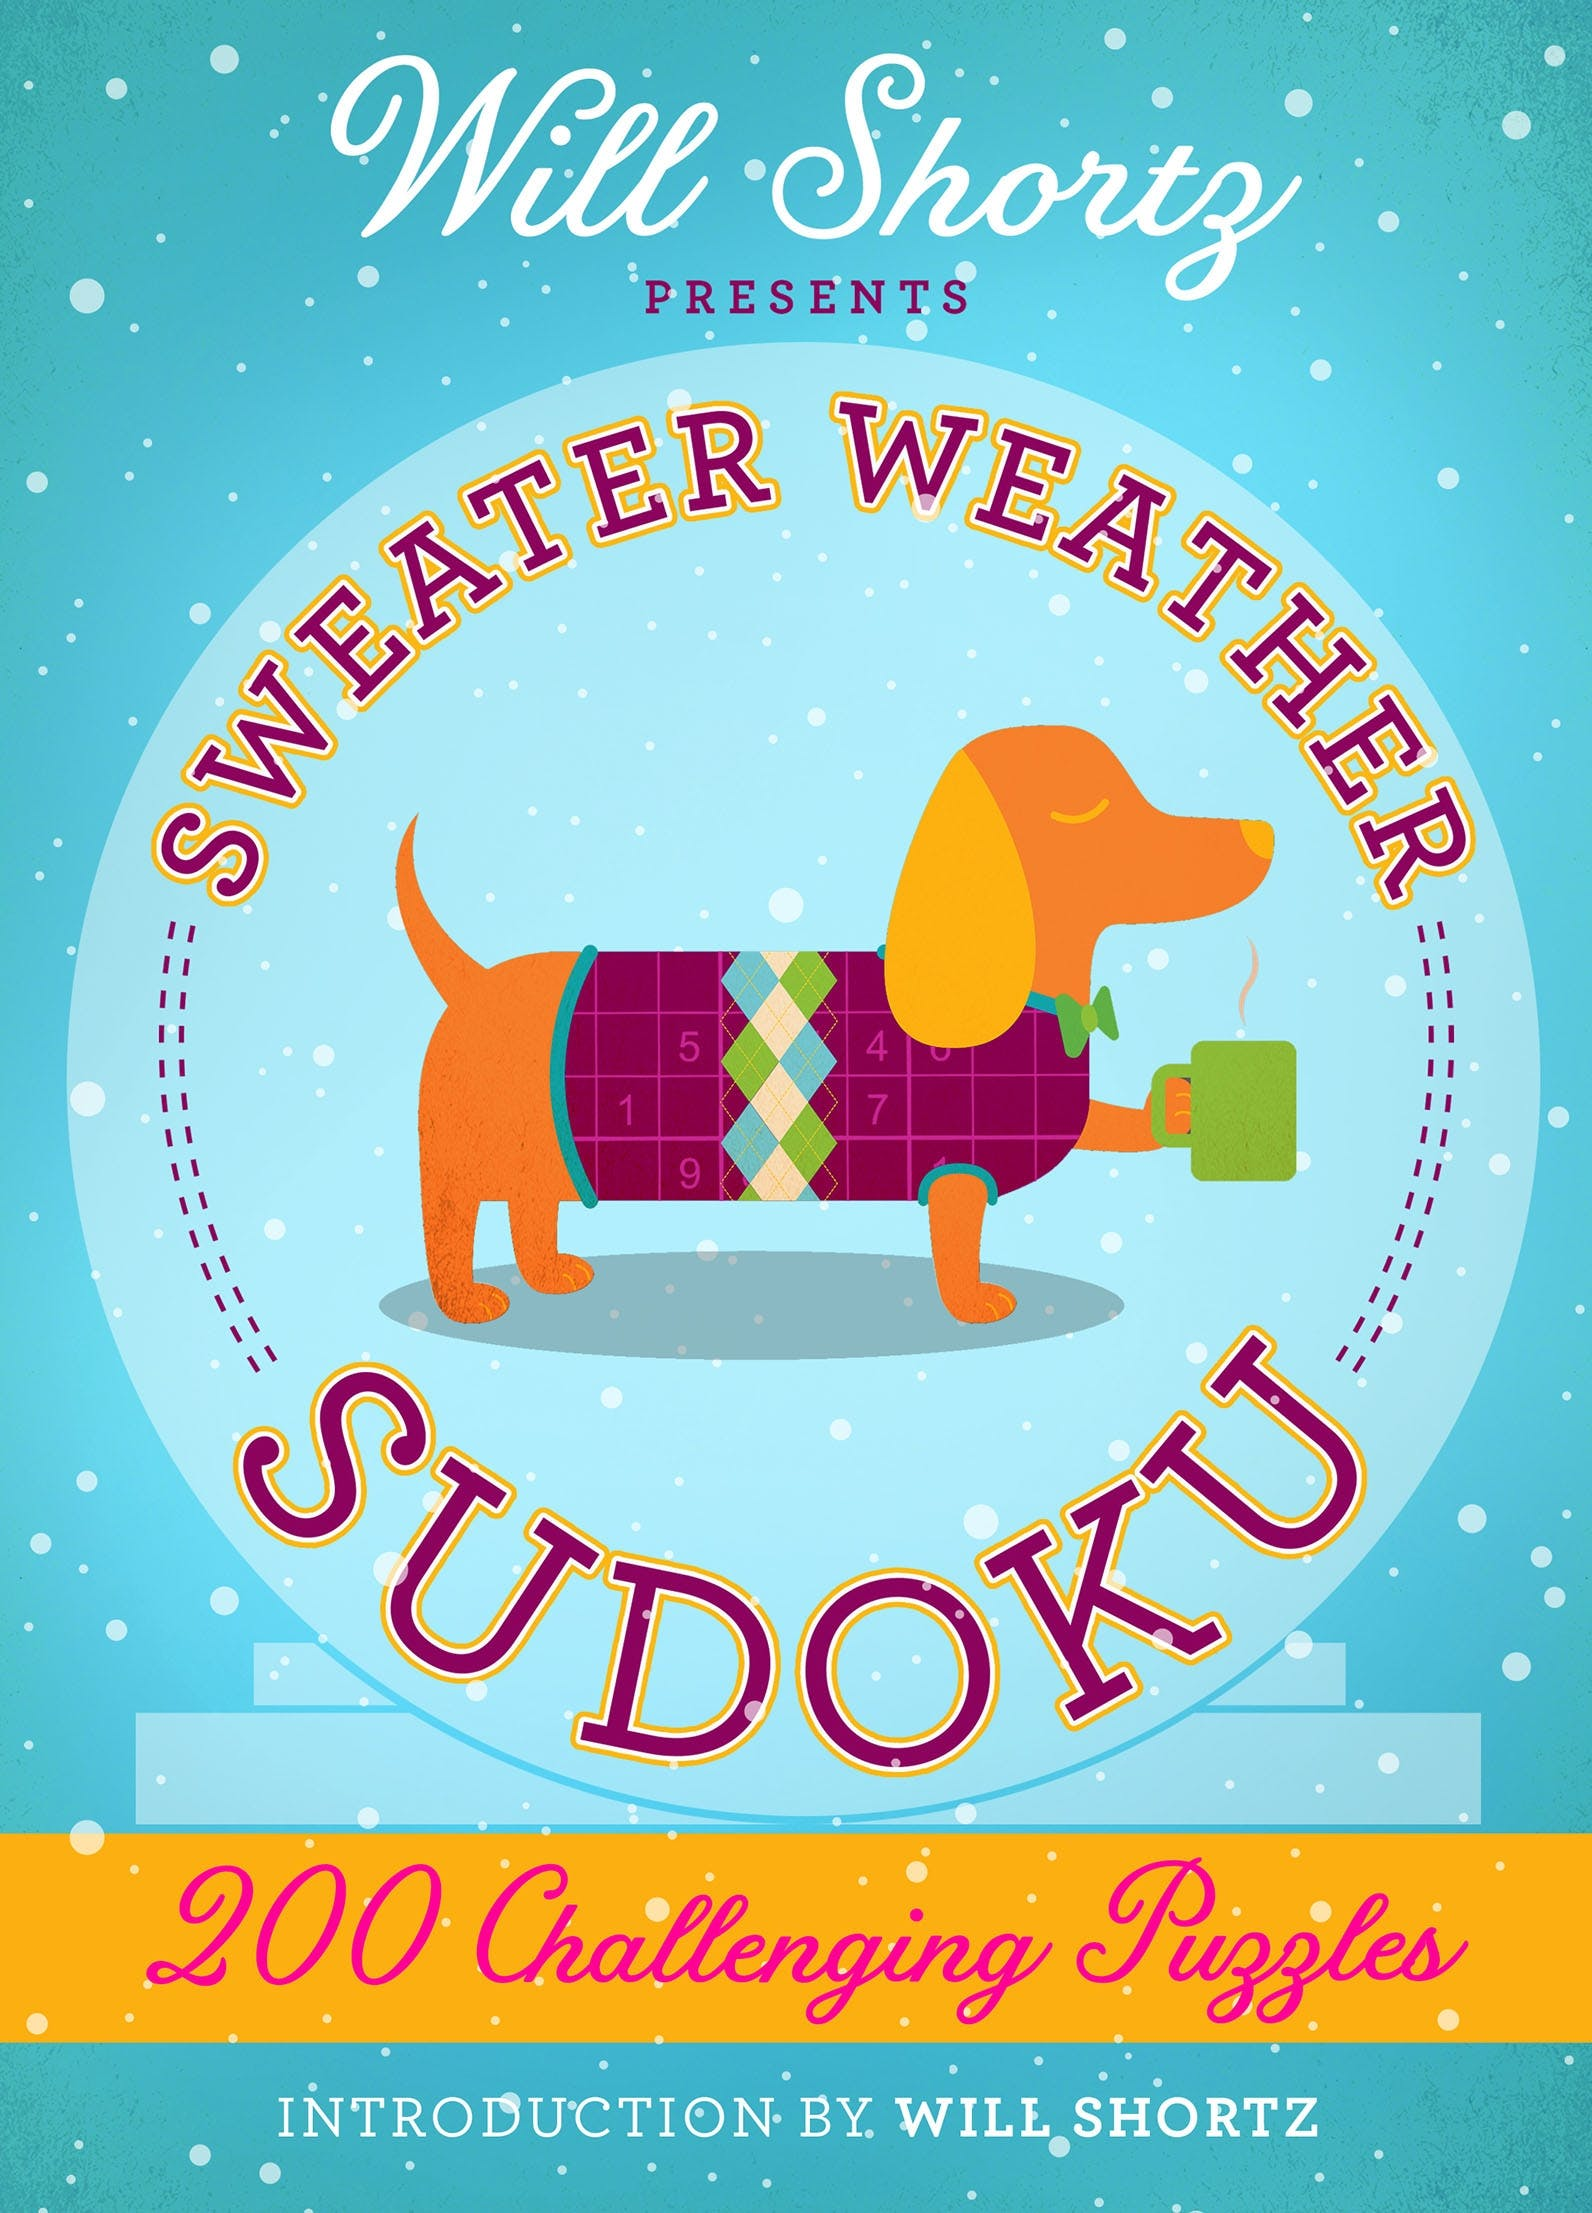 Image of Will Shortz Presents Sweater Weather Sudoku: 200 Challenging Puzzles